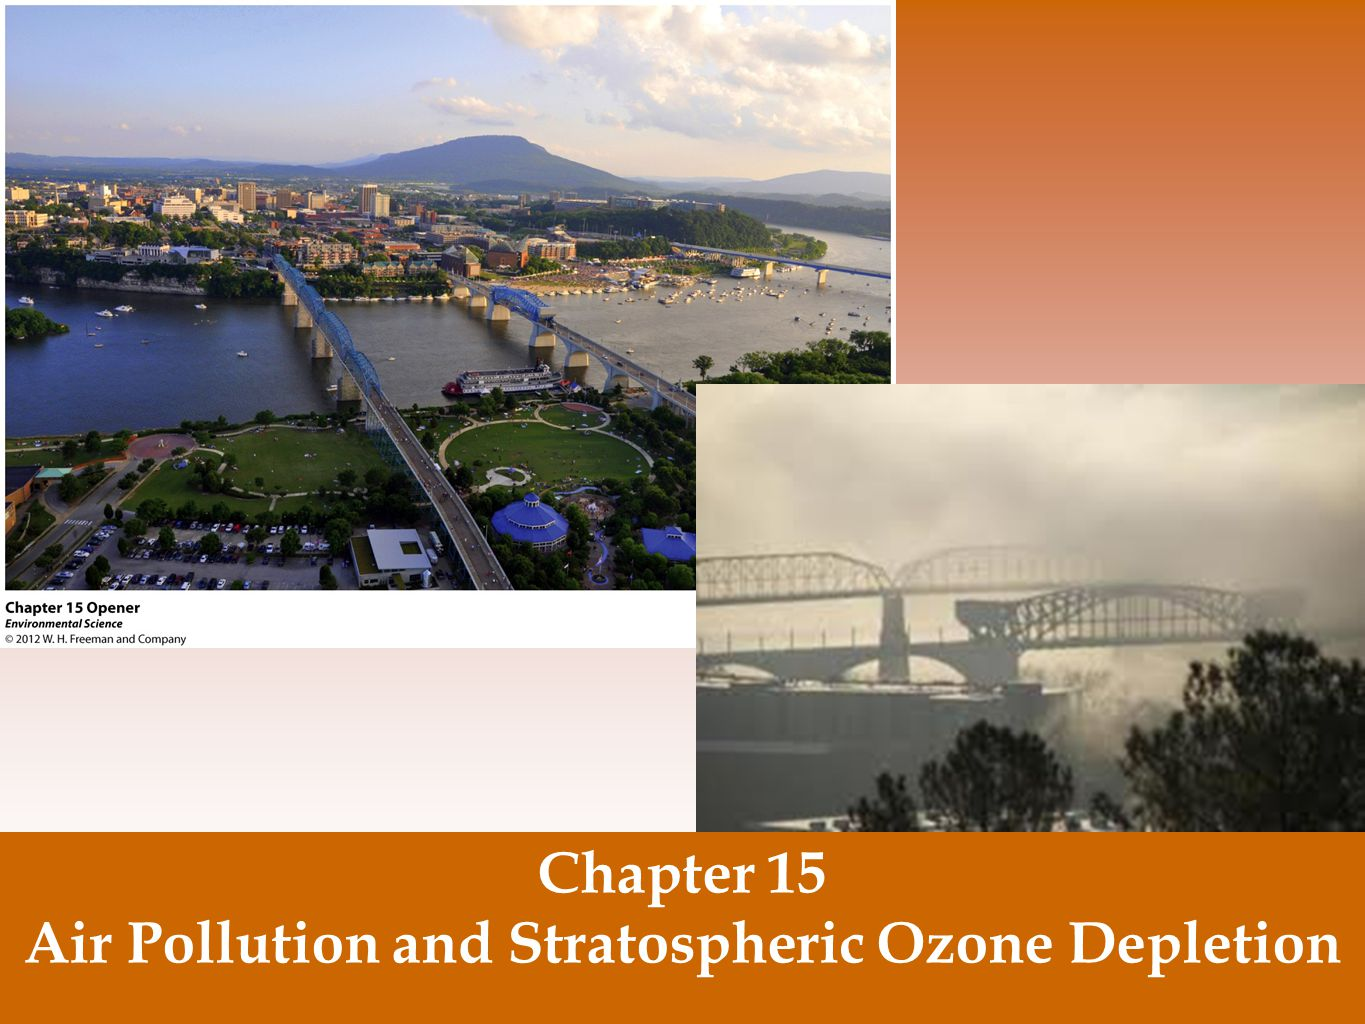 Air Pollution and Stratospheric Ozone Depletion